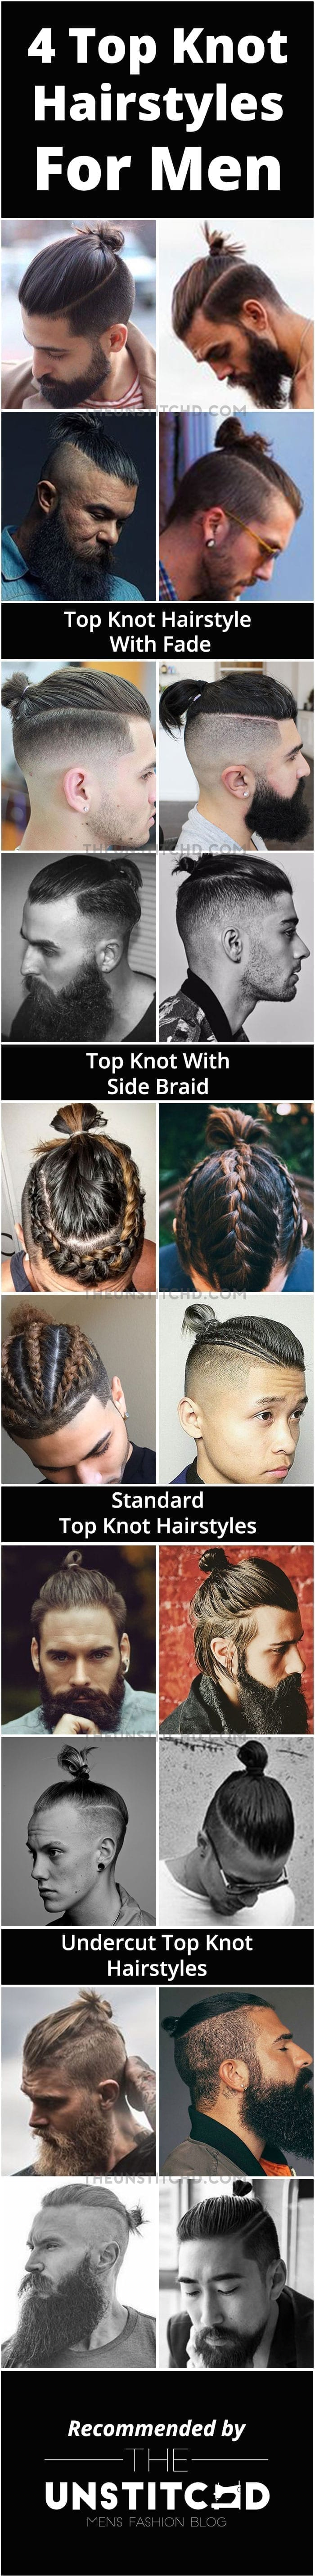 Knot-Hairstyles